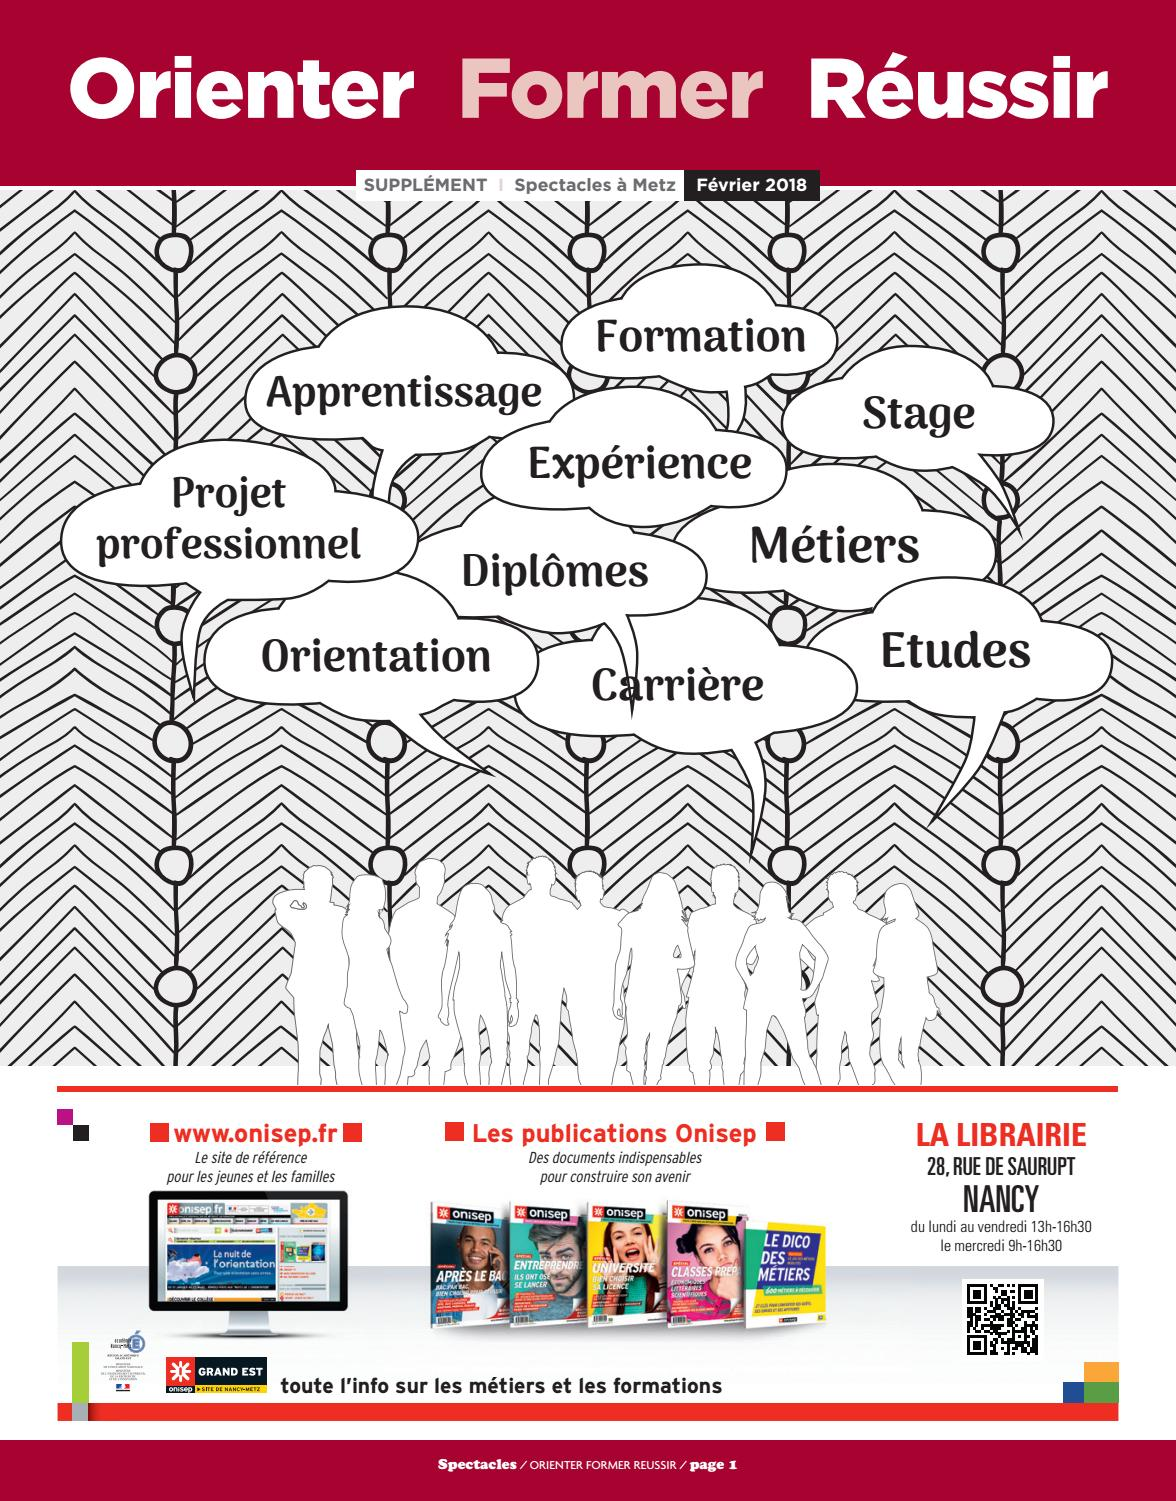 Metz Supplement Formation Spectacles Publications N 297